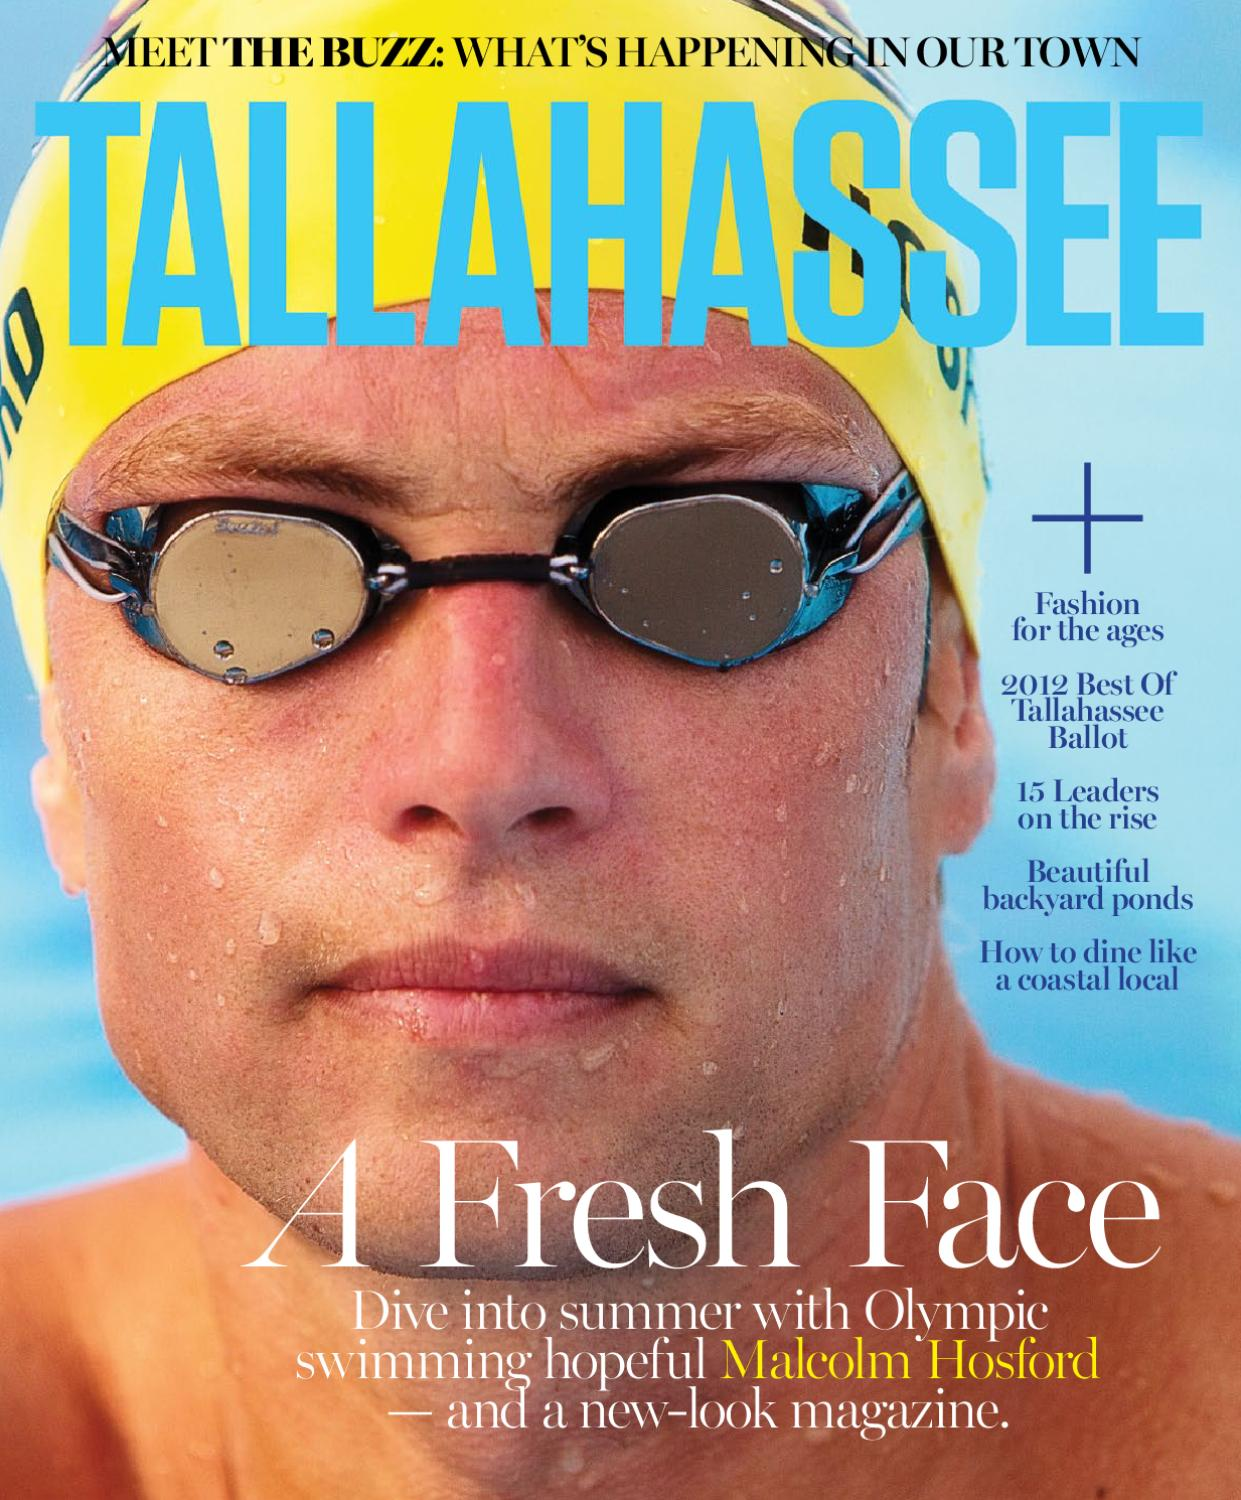 3a612ef19cc Tallahassee Magazine - May June 2012 by Rowland Publishing